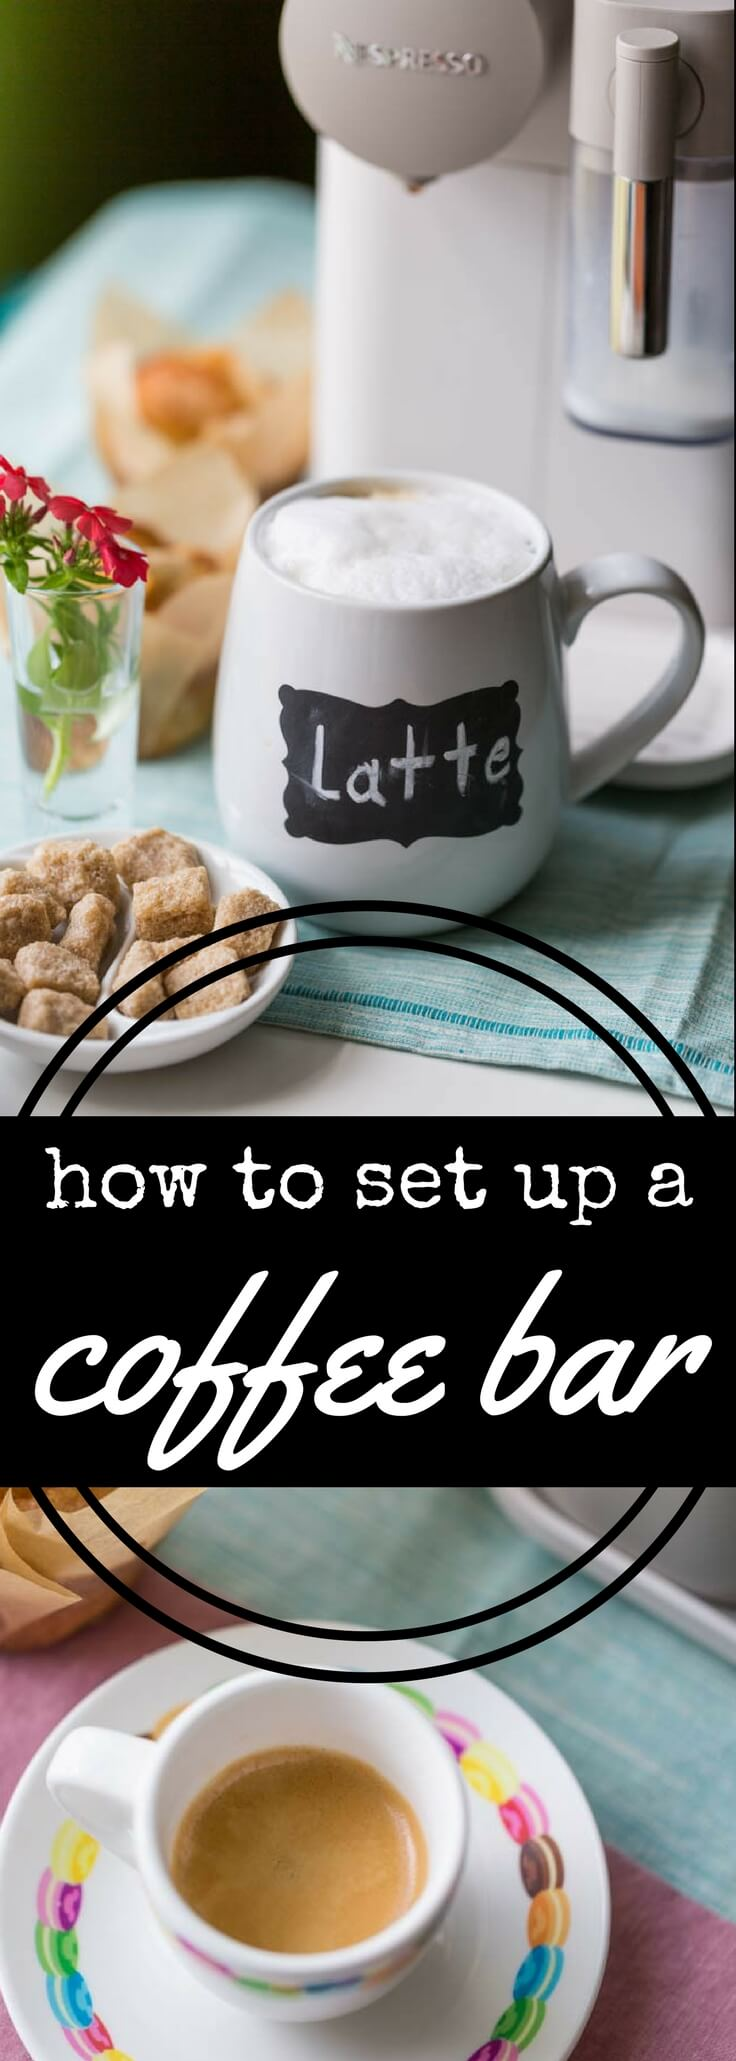 Making a home coffee bar is easier than you think!  Here's how to set up a beautiful home coffee station so you can enjoy coffeehouse-style drinks in the comfort of your own home.